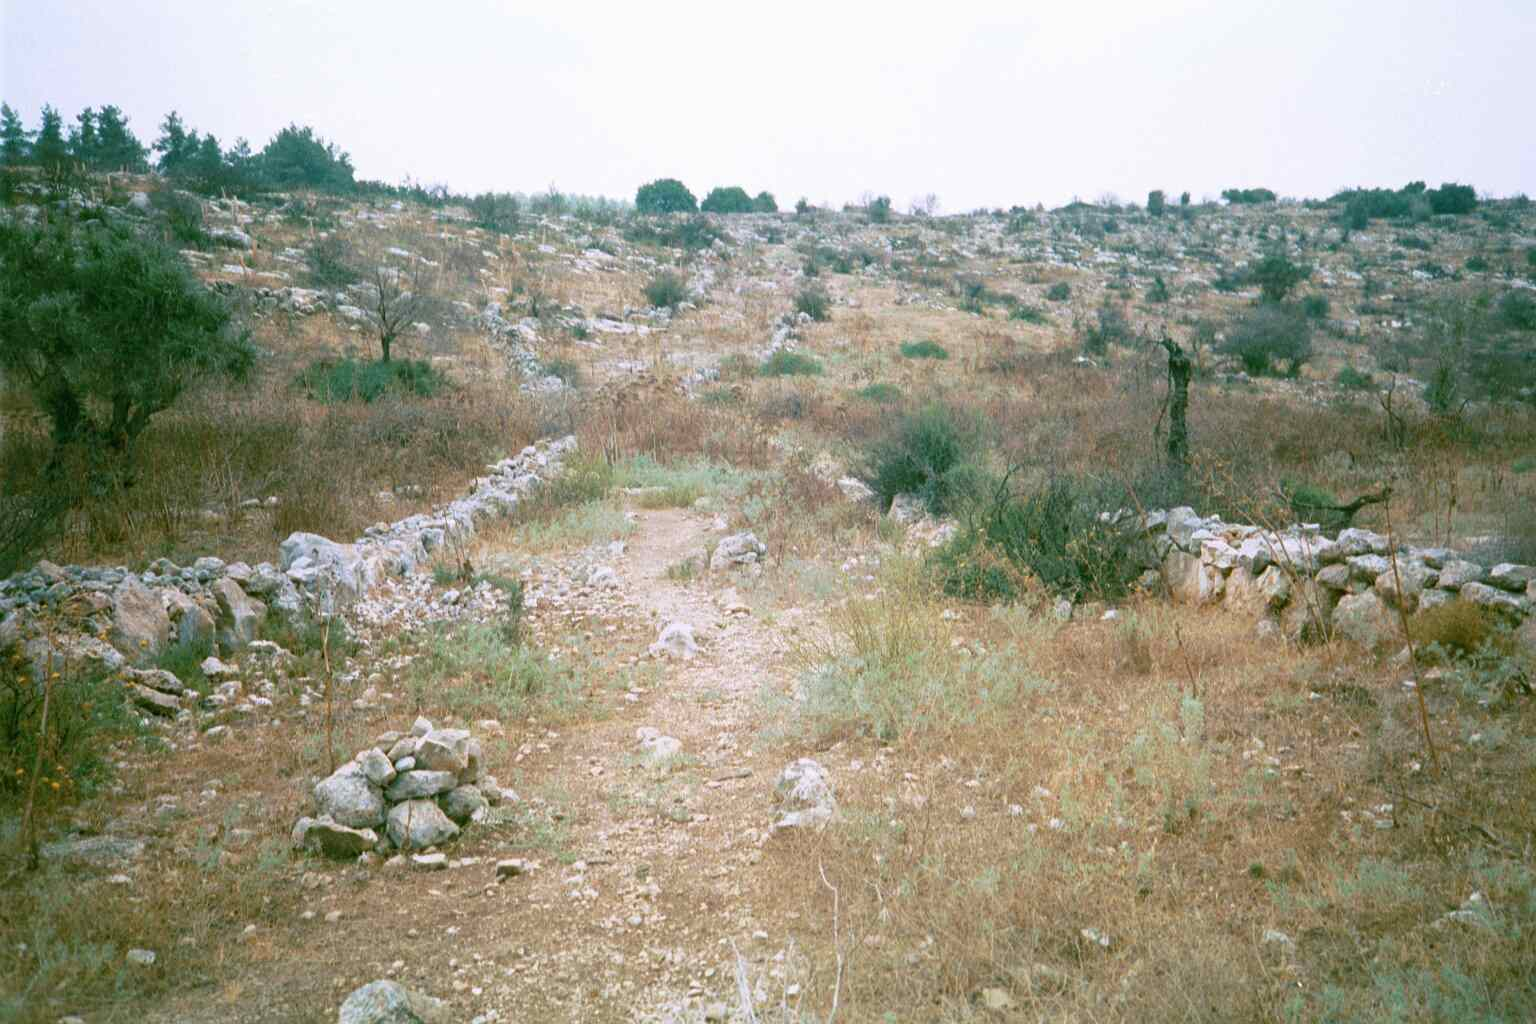 'Ajjur - عجّور : One fo the old dirt paths in 'Ajjur leading to a hill, July 2002